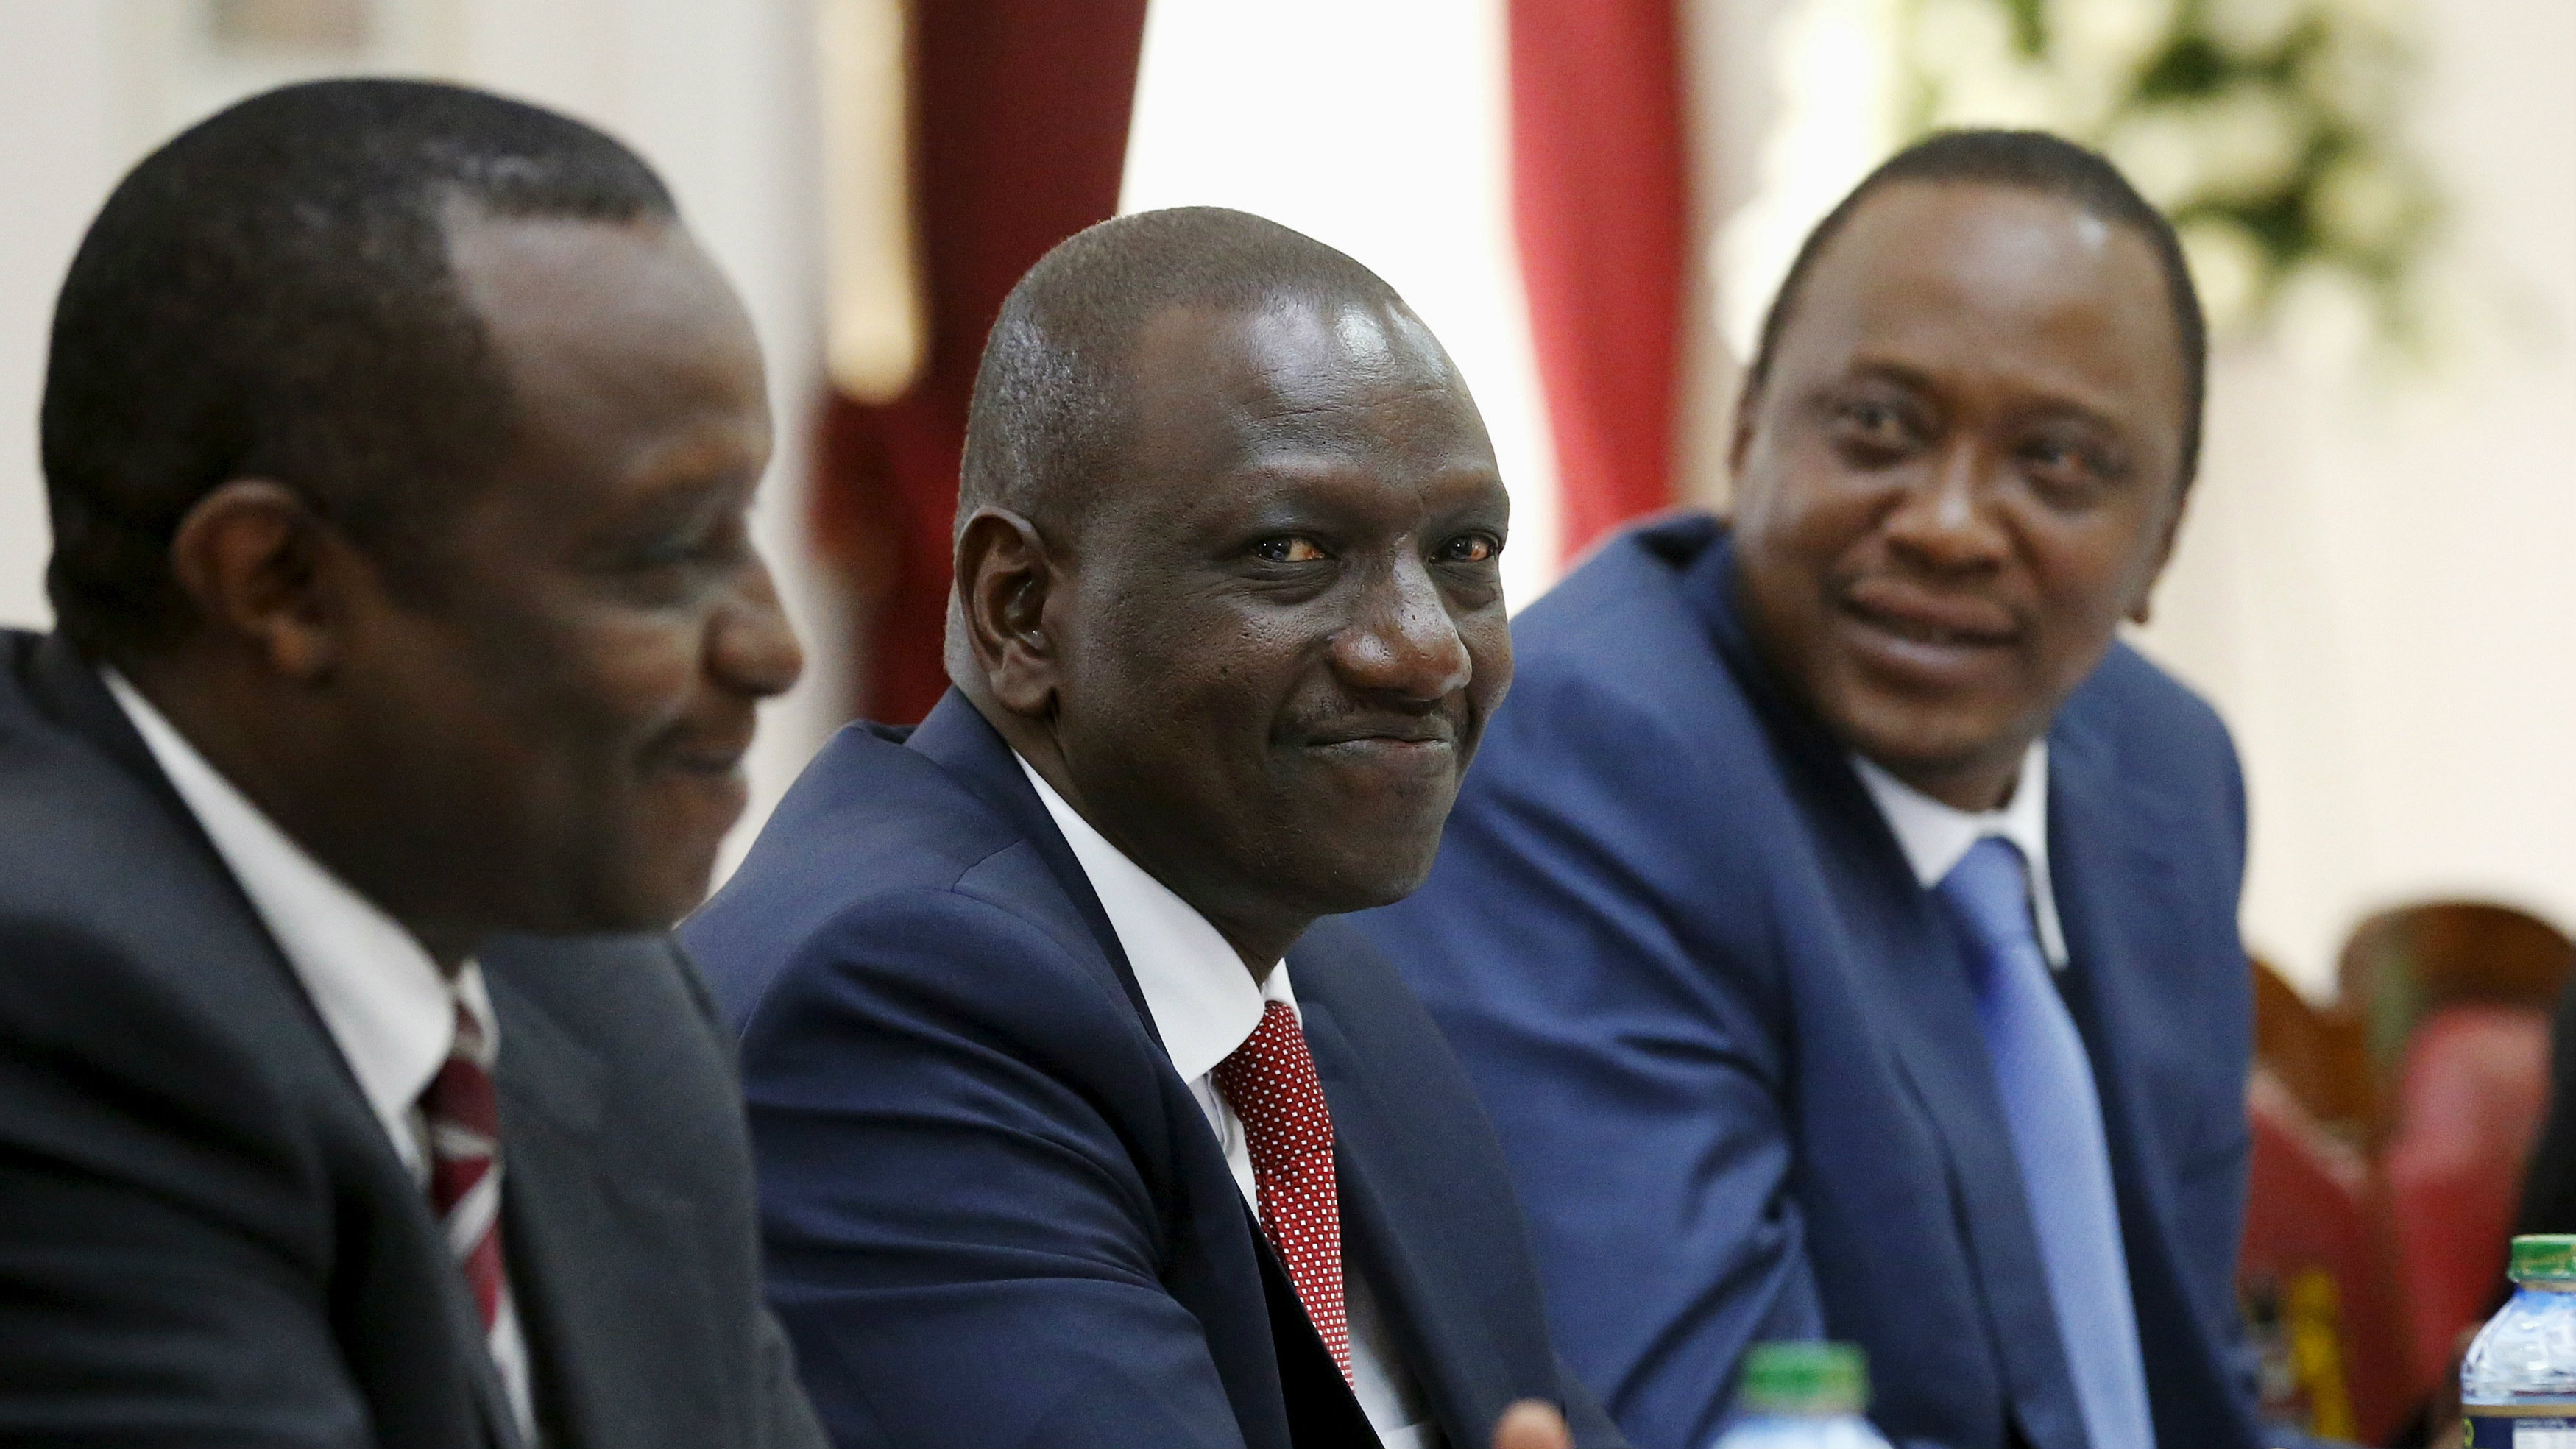 Kenya's Deputy President William Ruto (C) joins President Uhuru Kenyatta (R) for a bilateral meeting with U.S. President Barack Obama (not pictured) at the State House in Nairobi July 25, 2015.